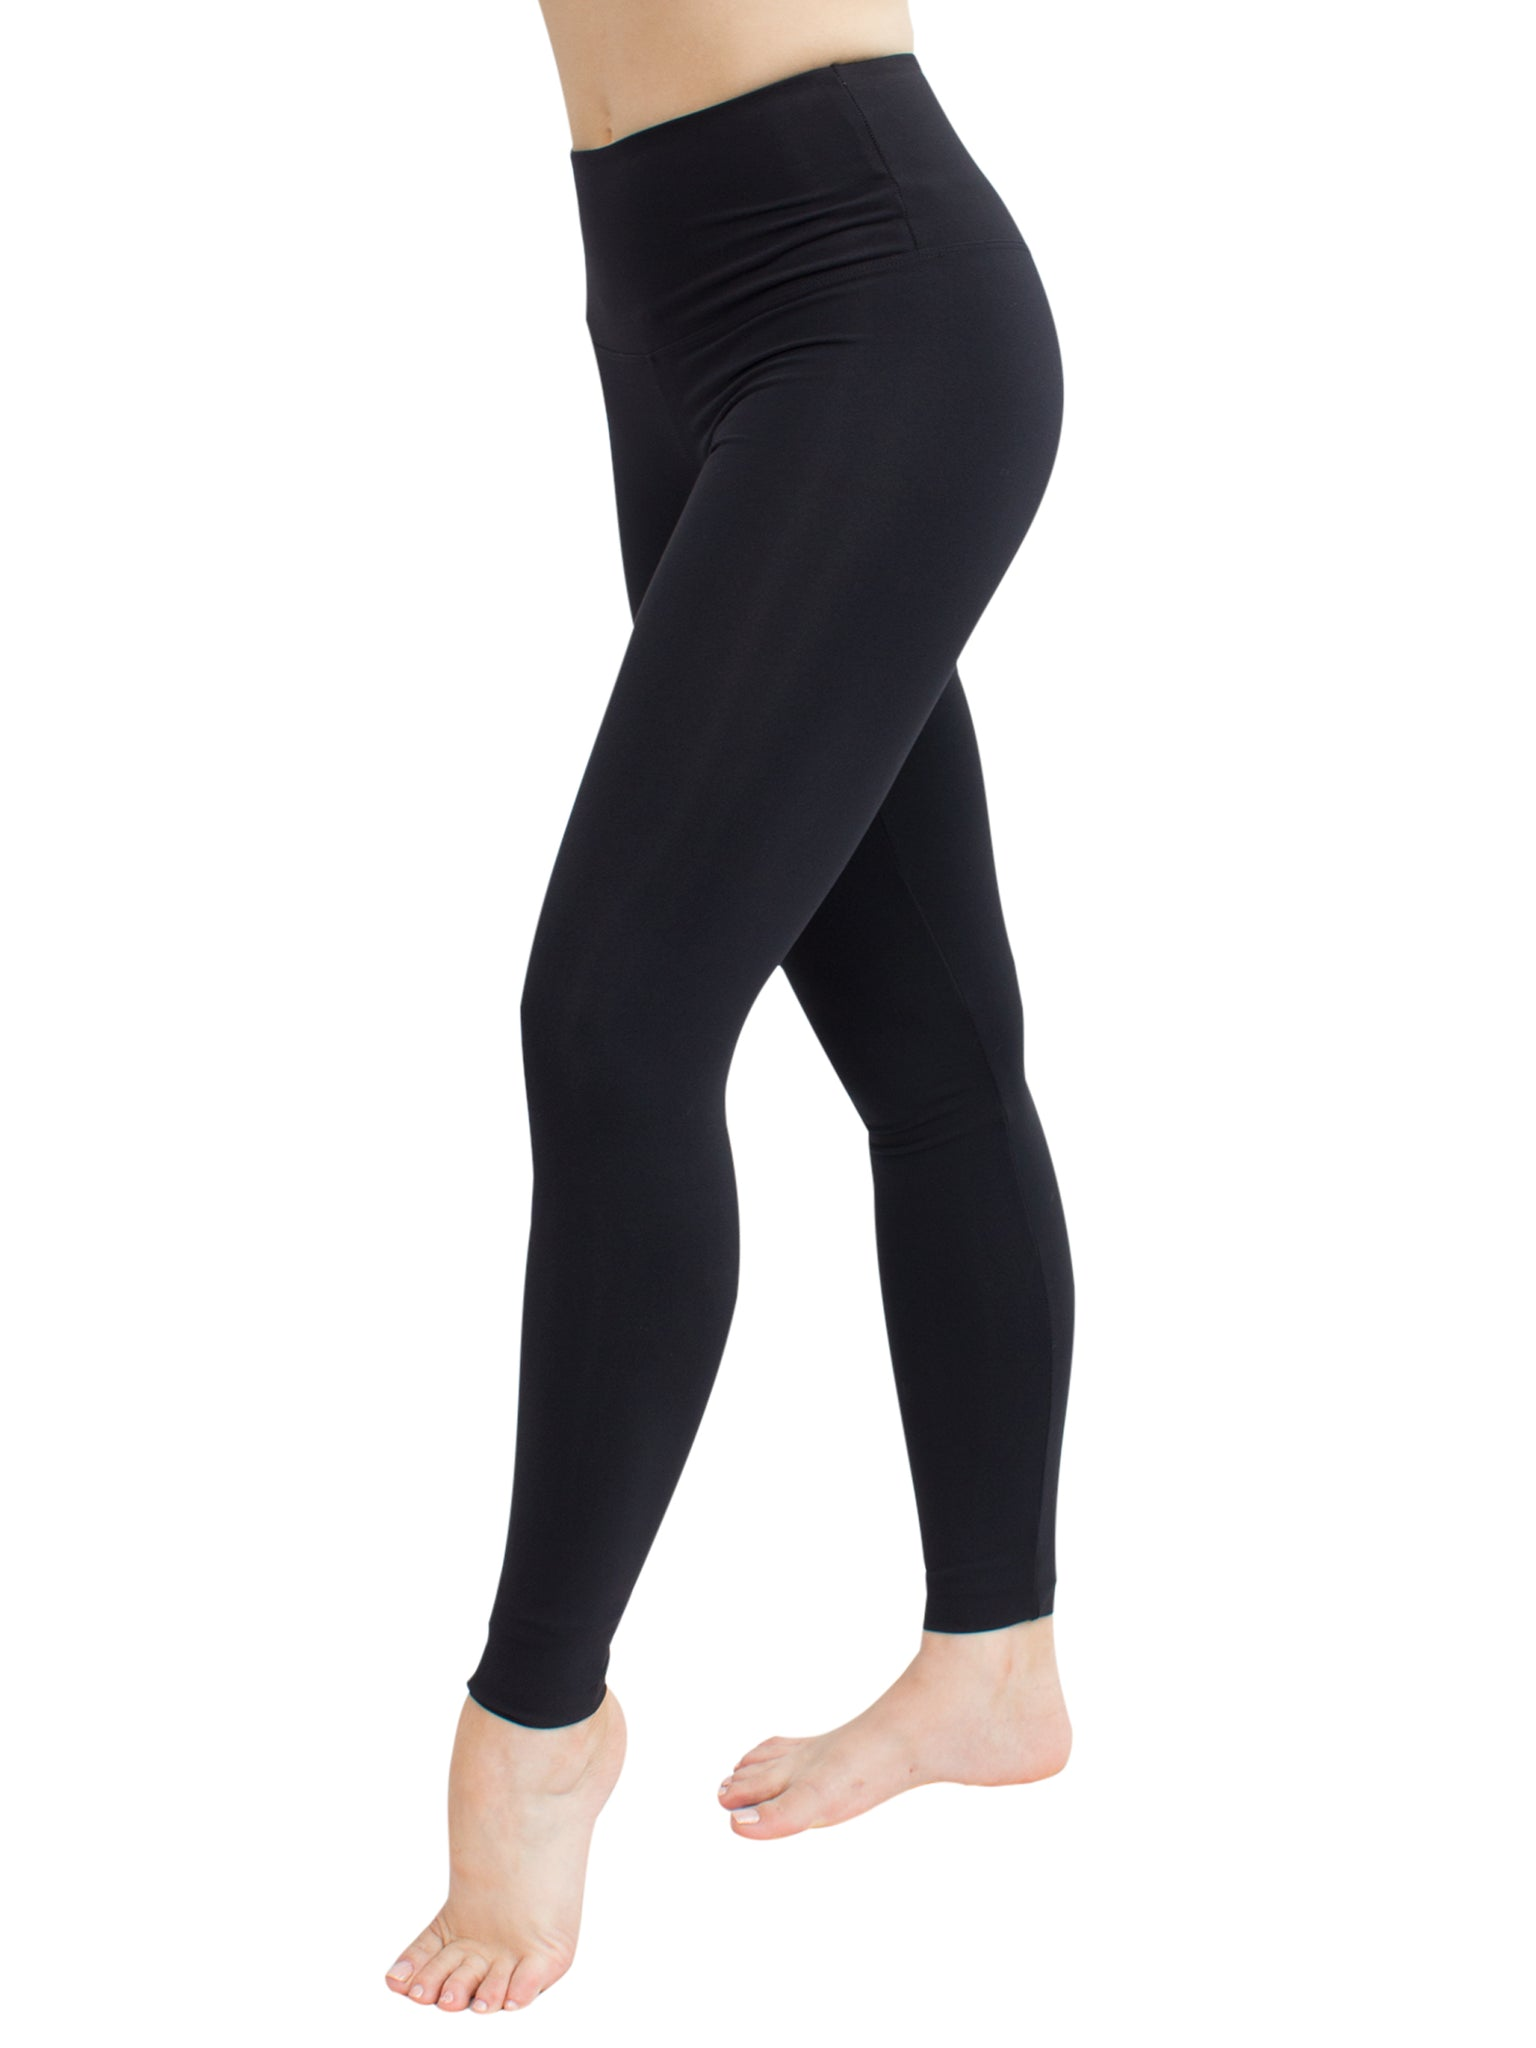 HIGH WAISTED EXTRA SOFT LEGGINGS - BLACK